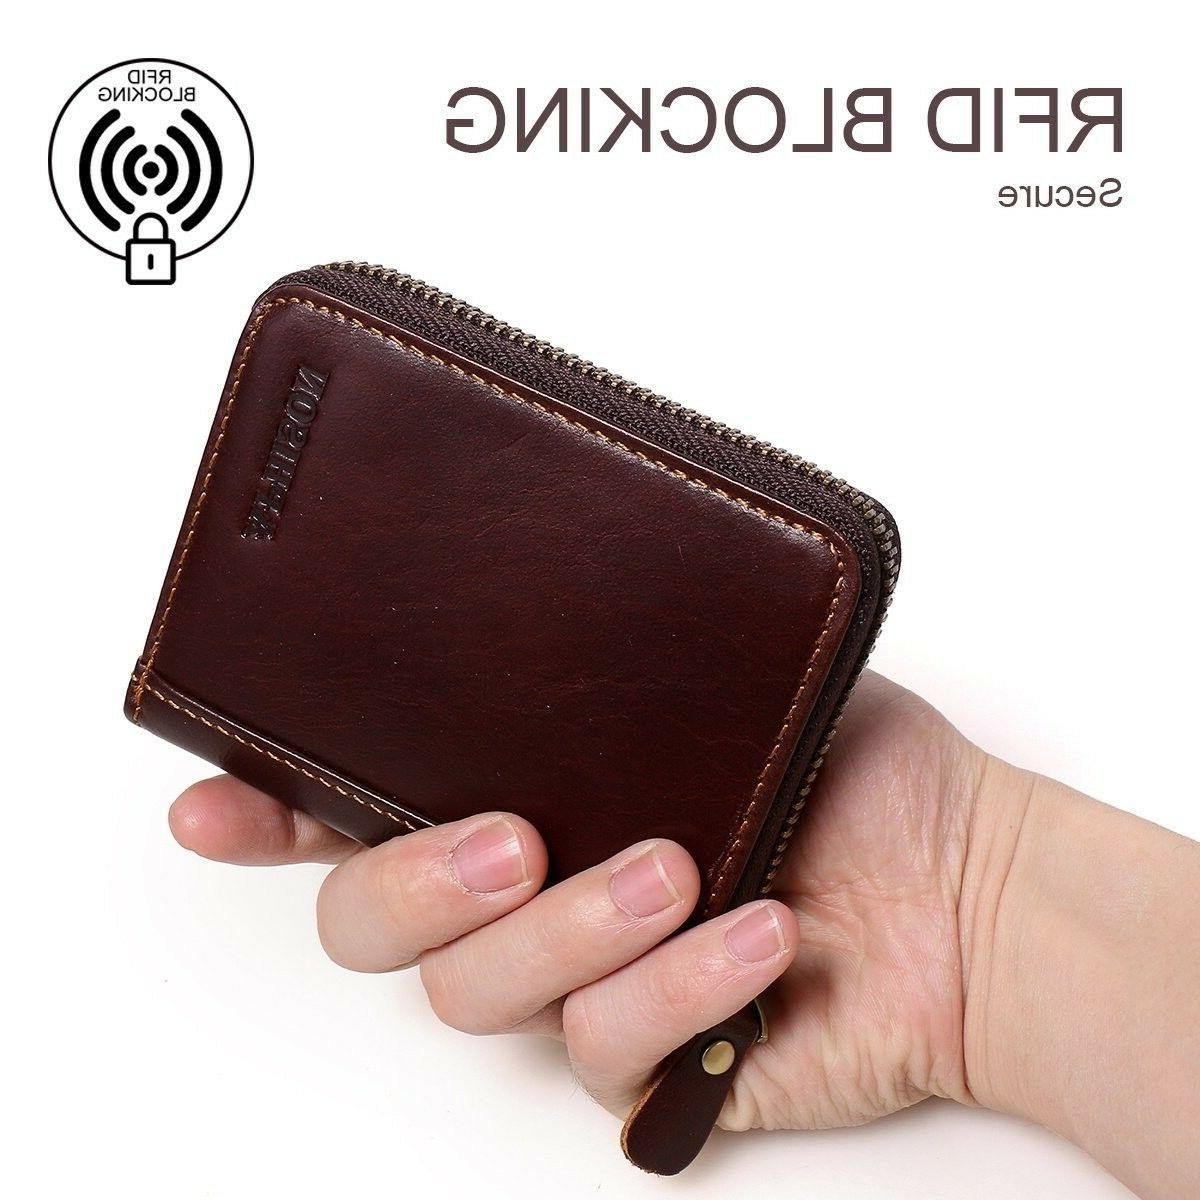 APHISON Credit Holder for Women Purse